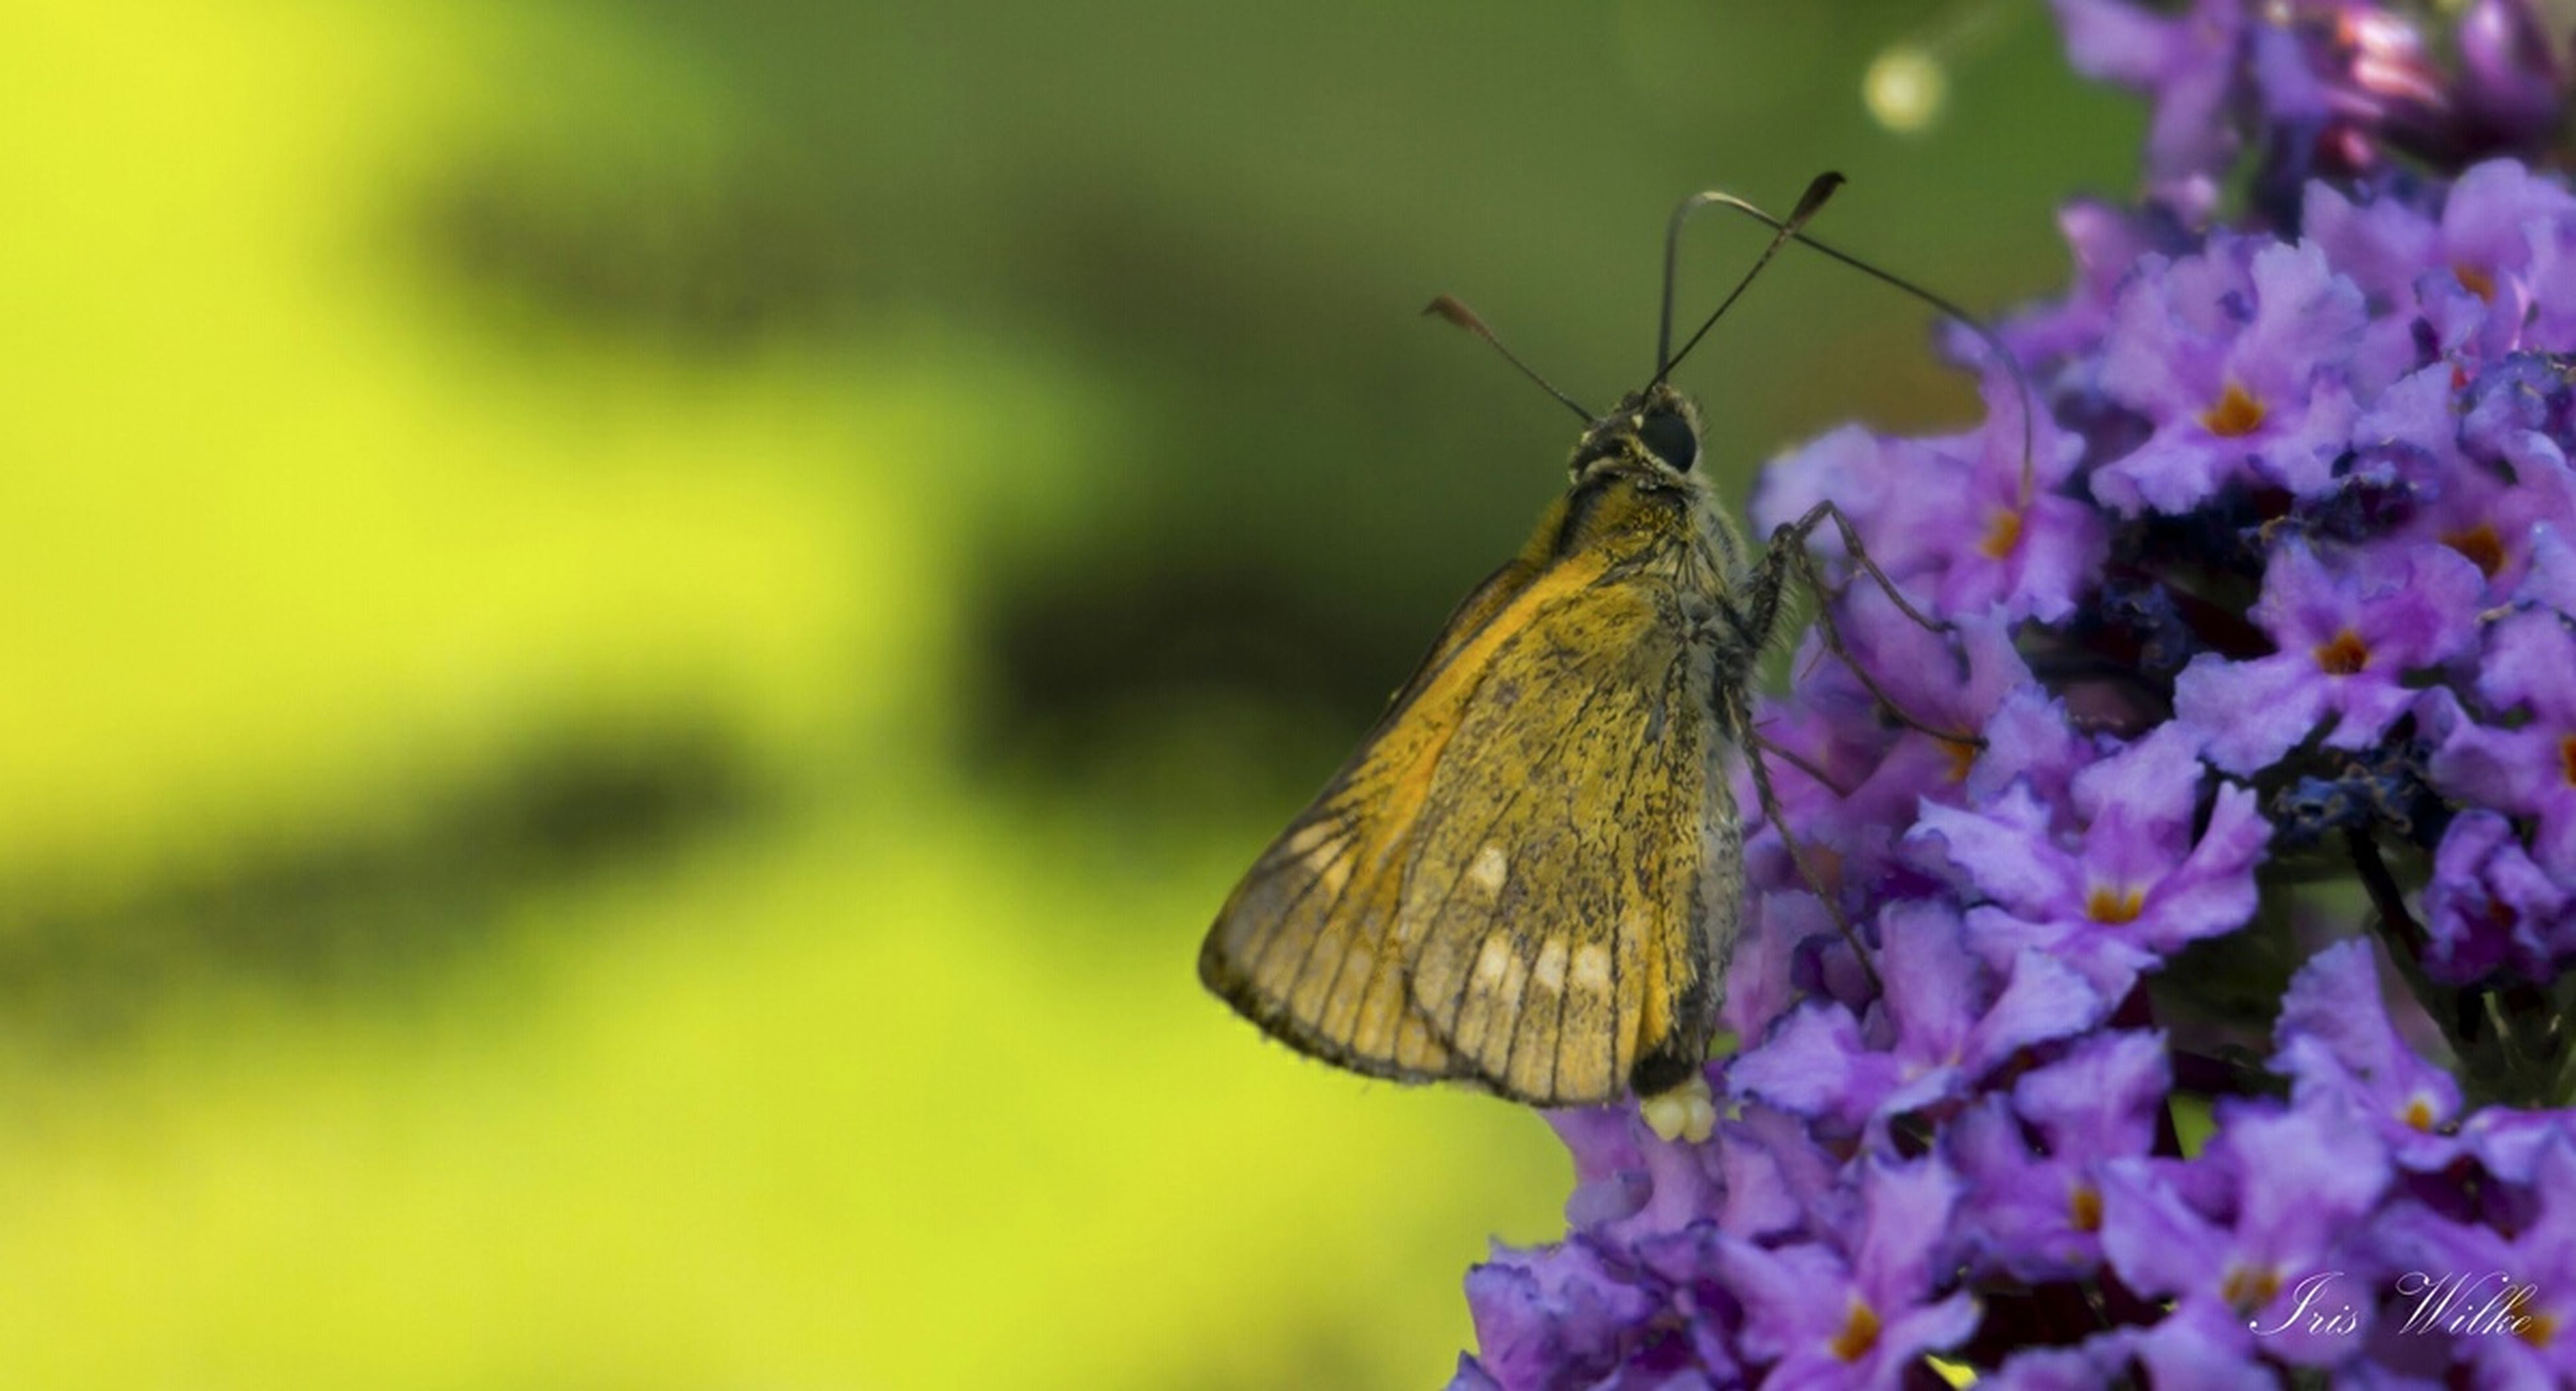 flower, one animal, insect, animal themes, animals in the wild, wildlife, fragility, freshness, pollination, petal, focus on foreground, beauty in nature, close-up, growth, bee, nature, plant, flower head, symbiotic relationship, butterfly